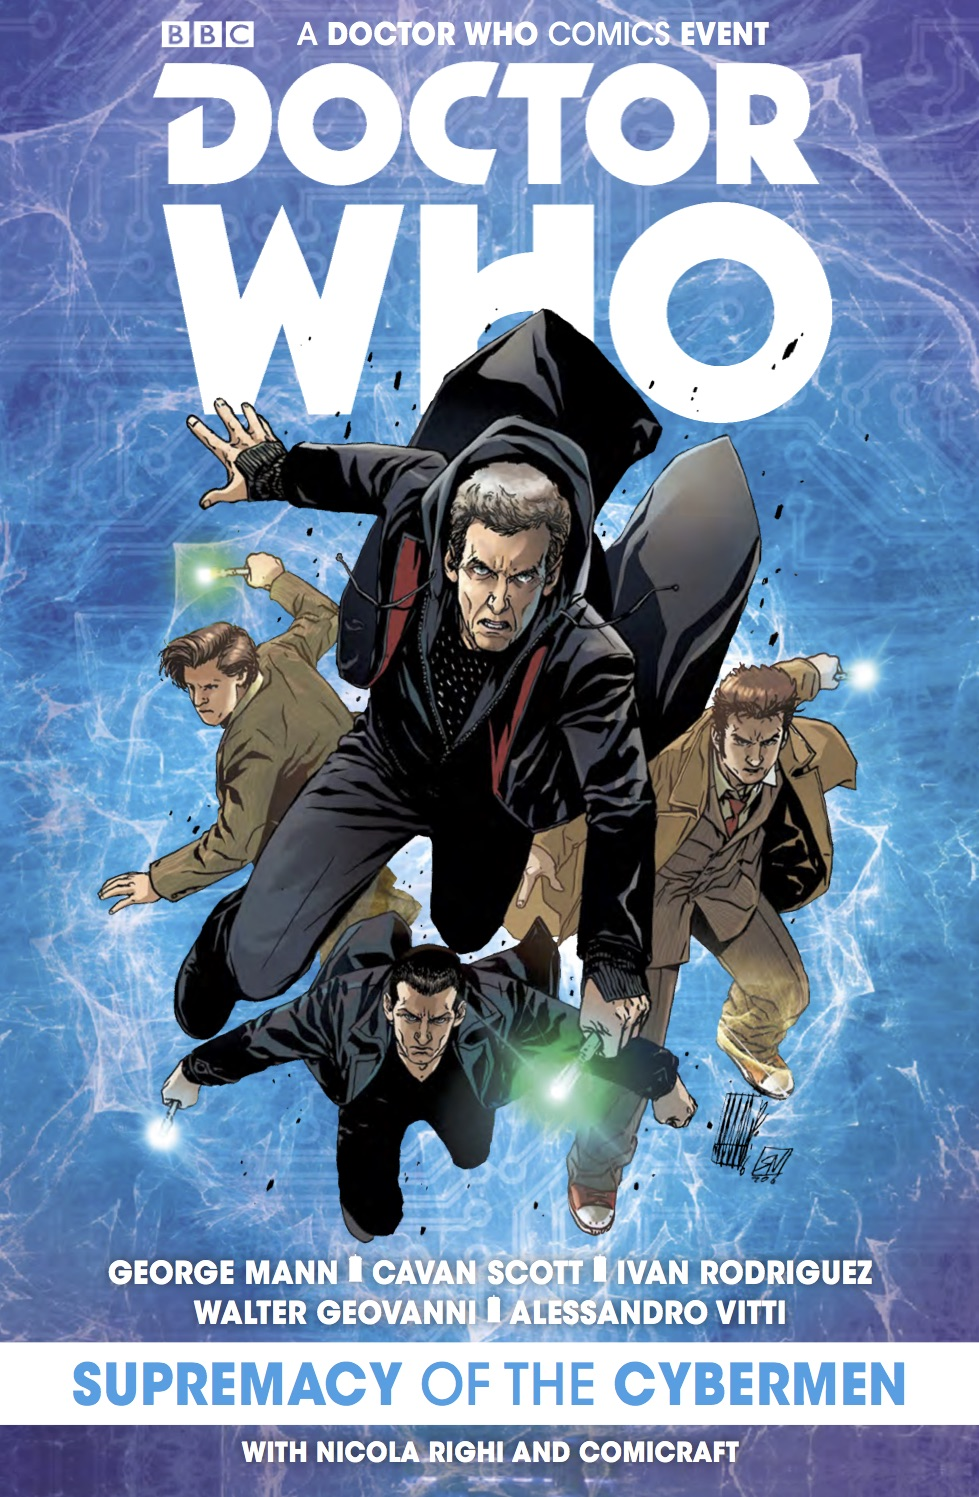 TITAN COMICS - DOCTOR WHO: EVENT 2016 - SUPREMACY OF THE CYBERMEN - COVER